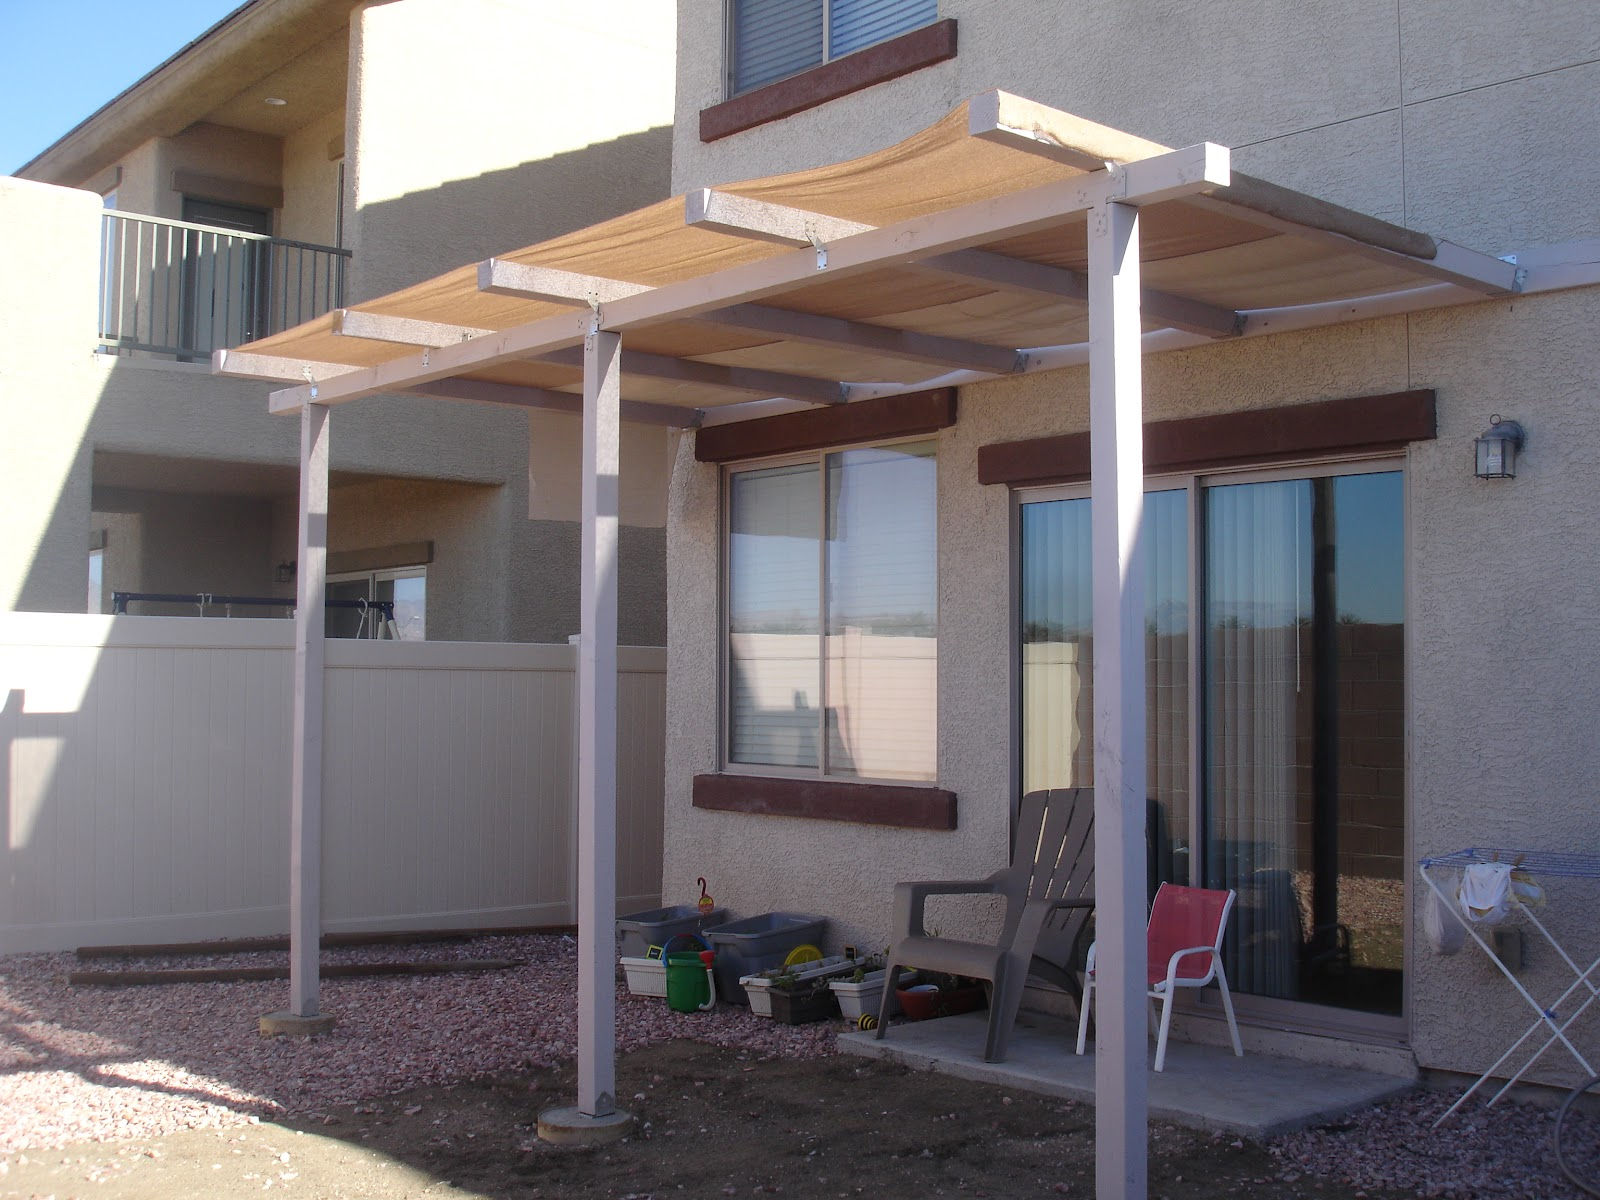 Alex haralson update on our diy patio cover for Build covered patio